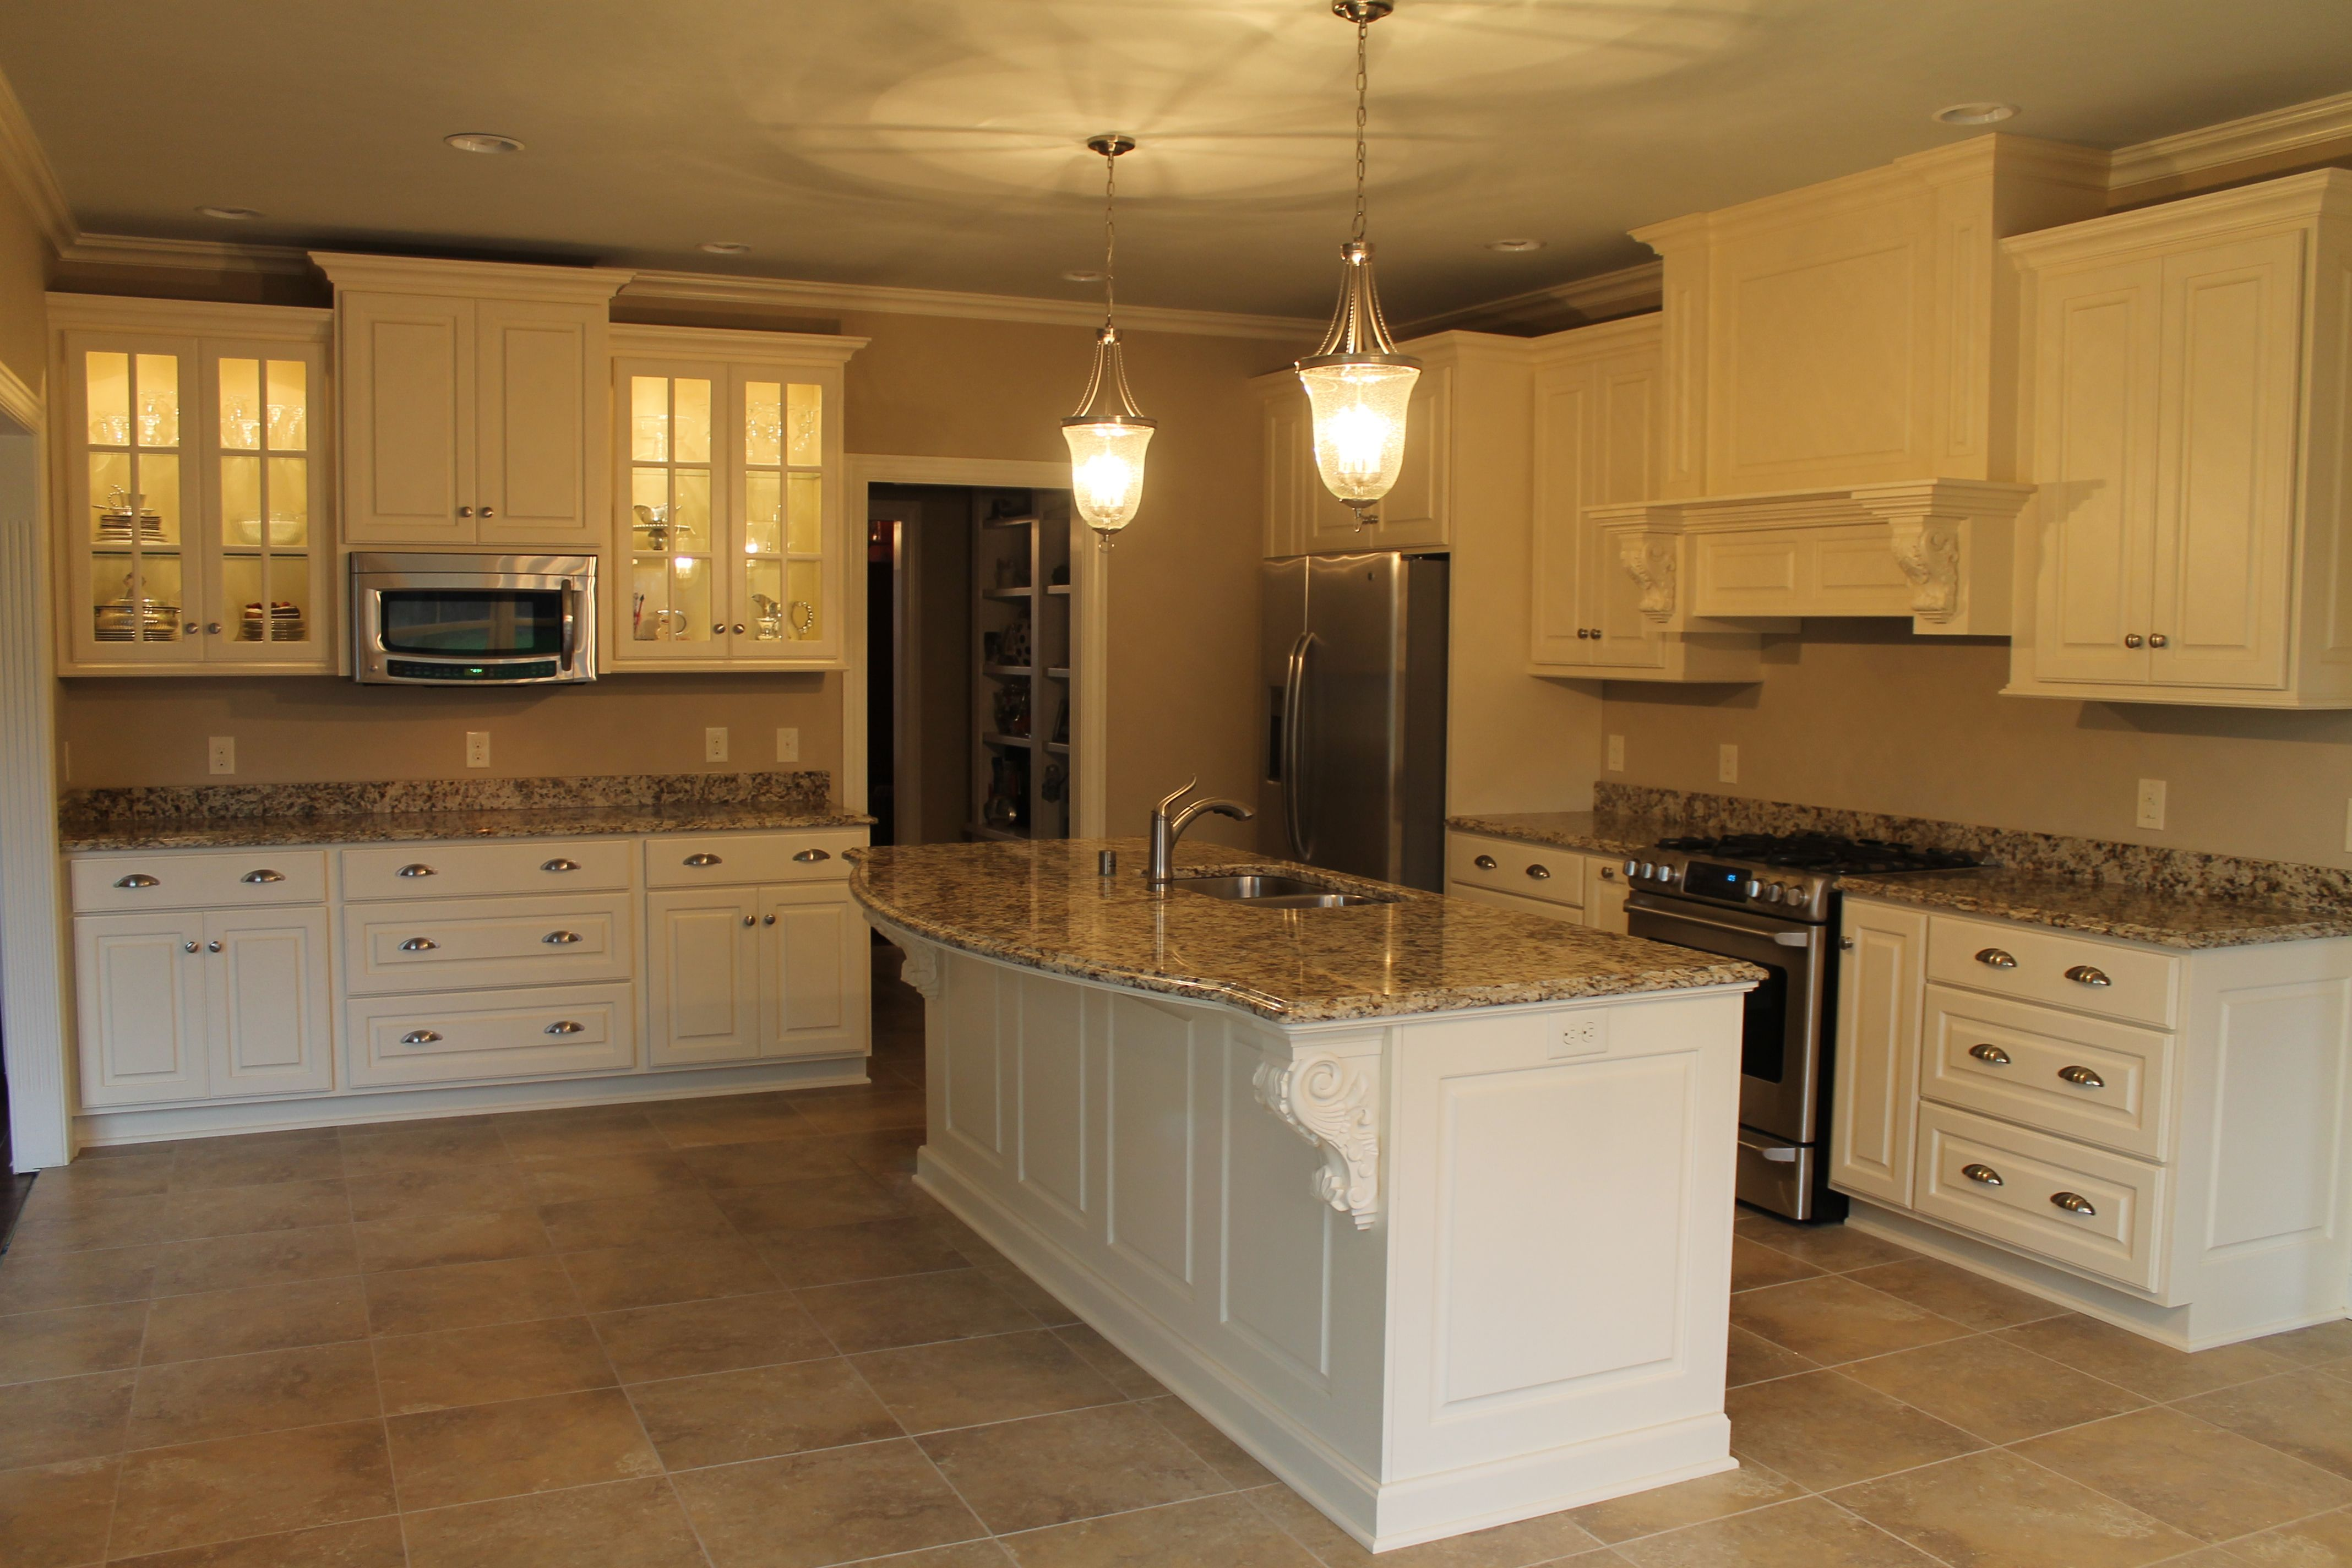 Gorgeous Signature Custom Cabinets Painted In Queen Anne S Lace Kitchen Remodel Painting Cabinets Custom Cabinets